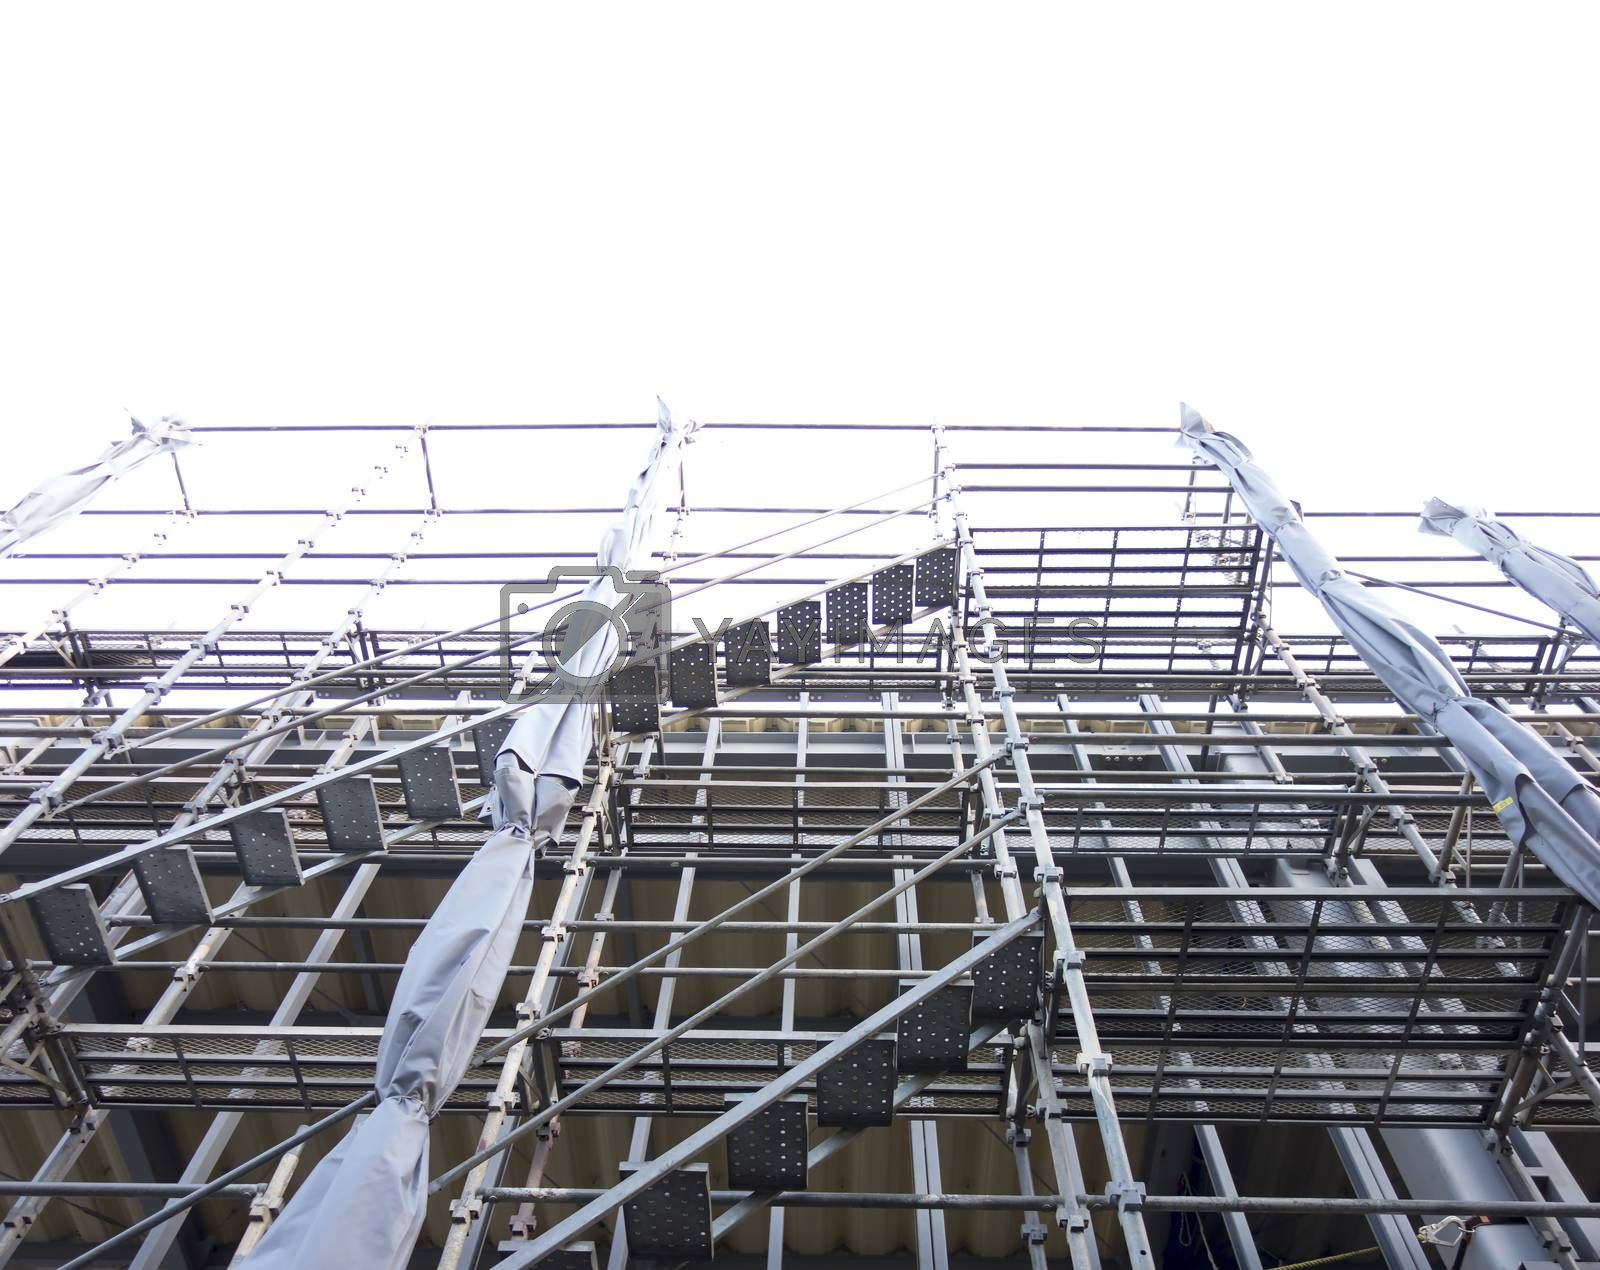 Scaffolding around the building for the construction. Construction building with Scaffolding around the building